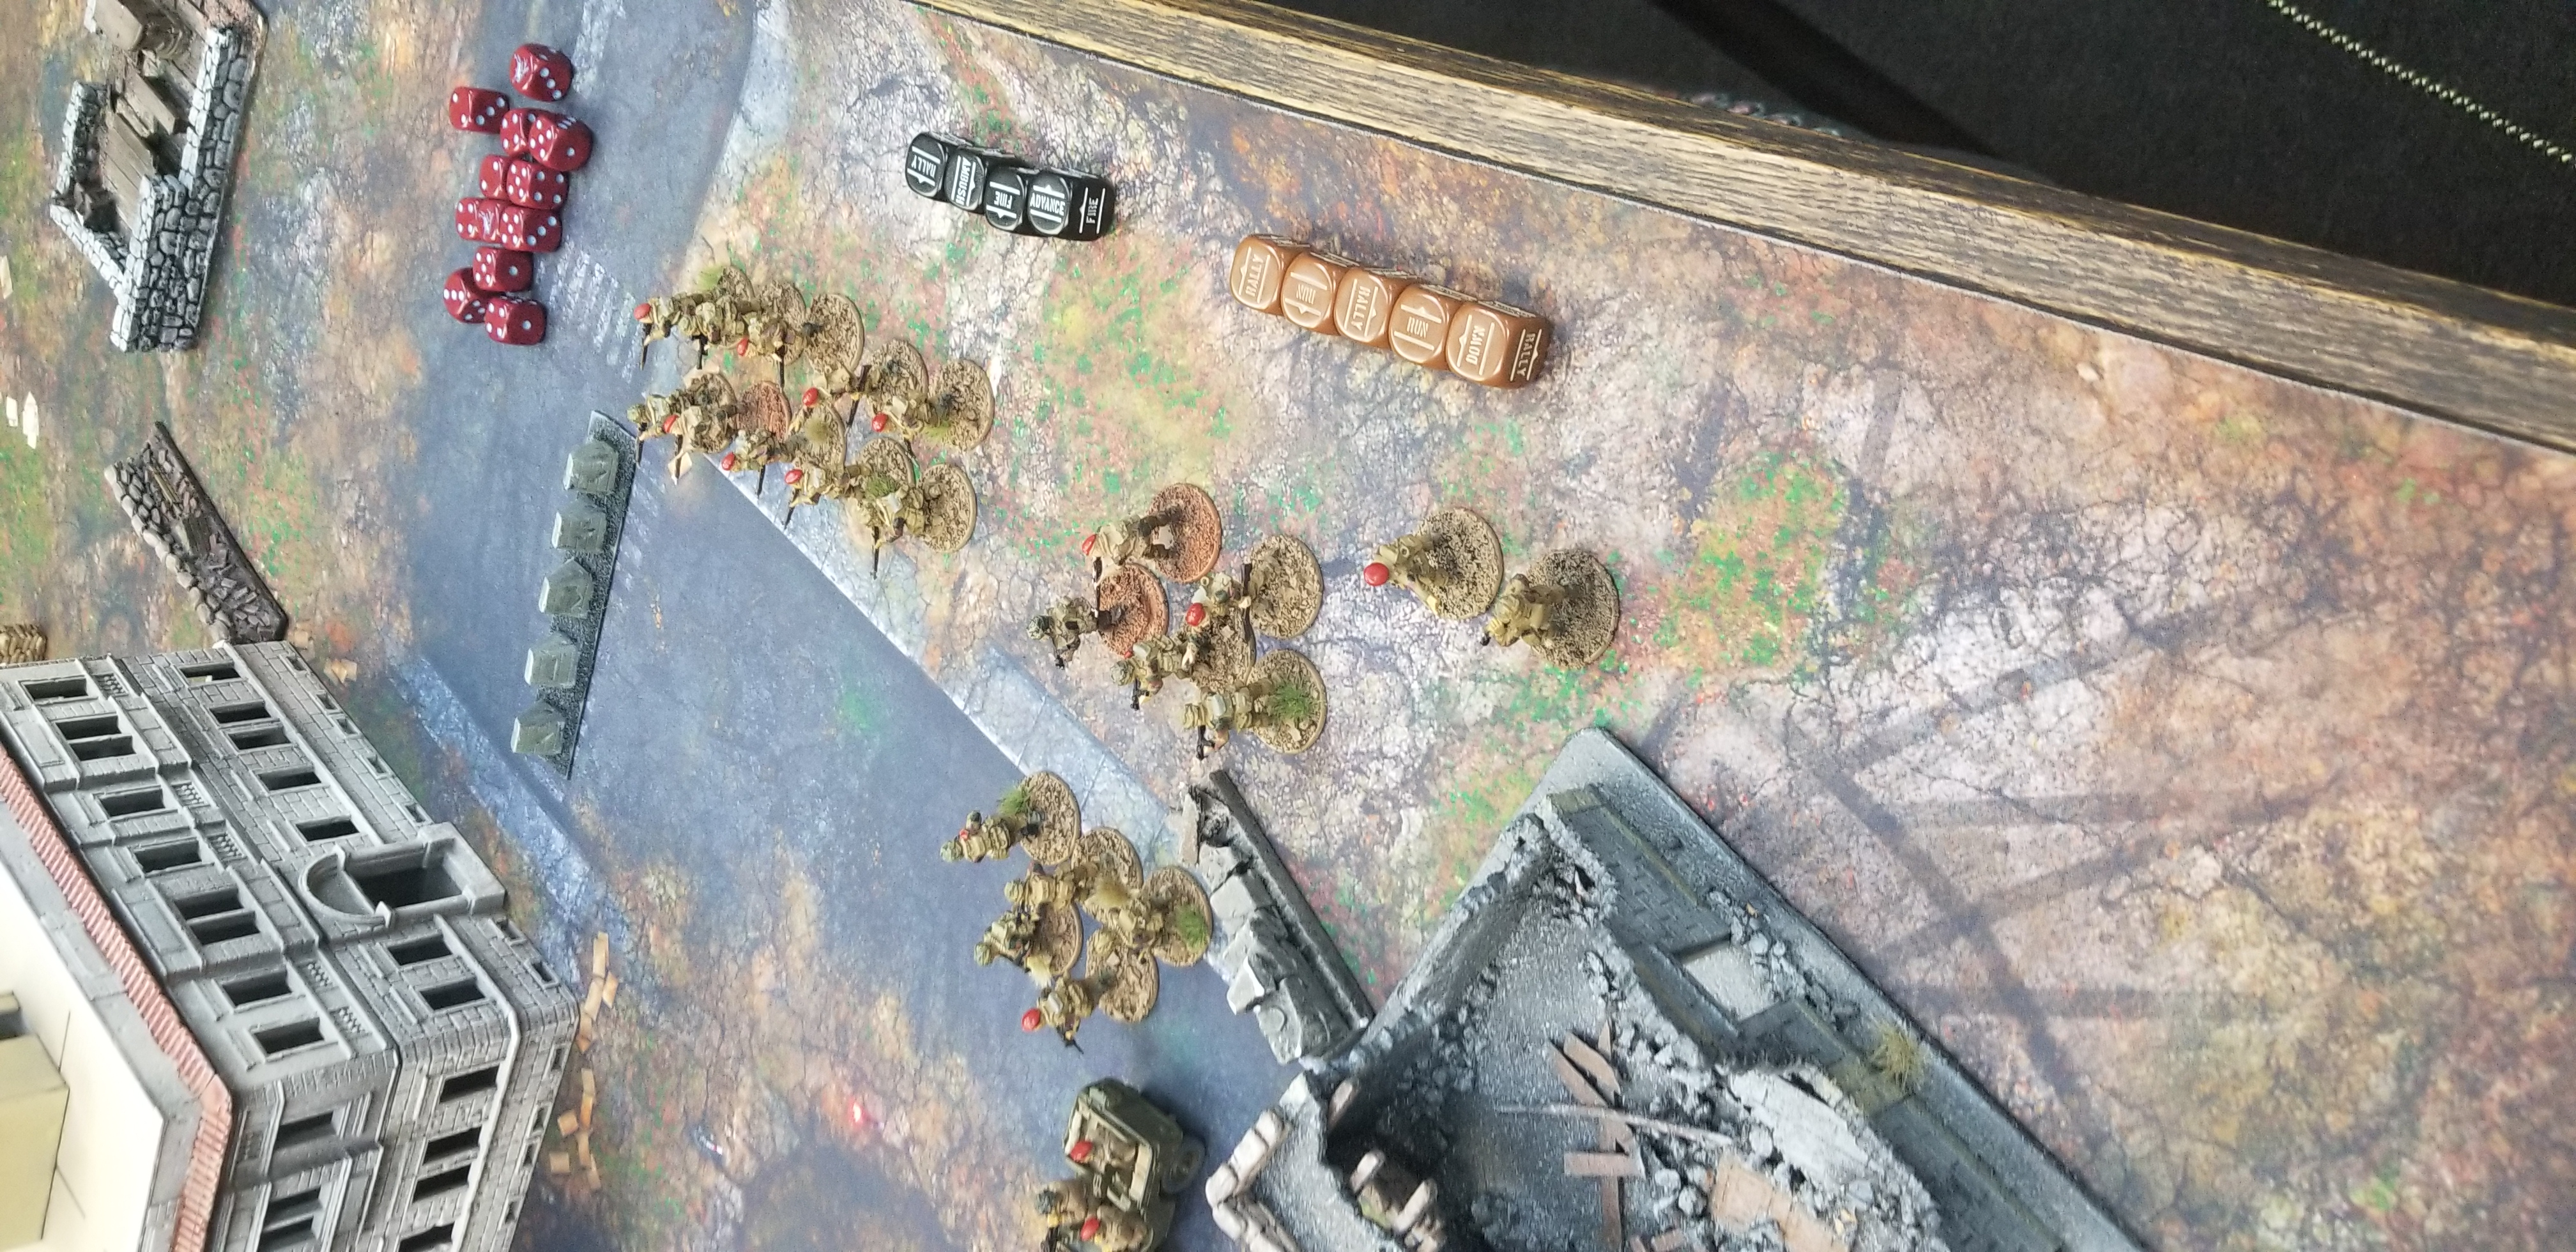 Ovcharenko versus Kampfgruppe rot in a fierce infantry engagement